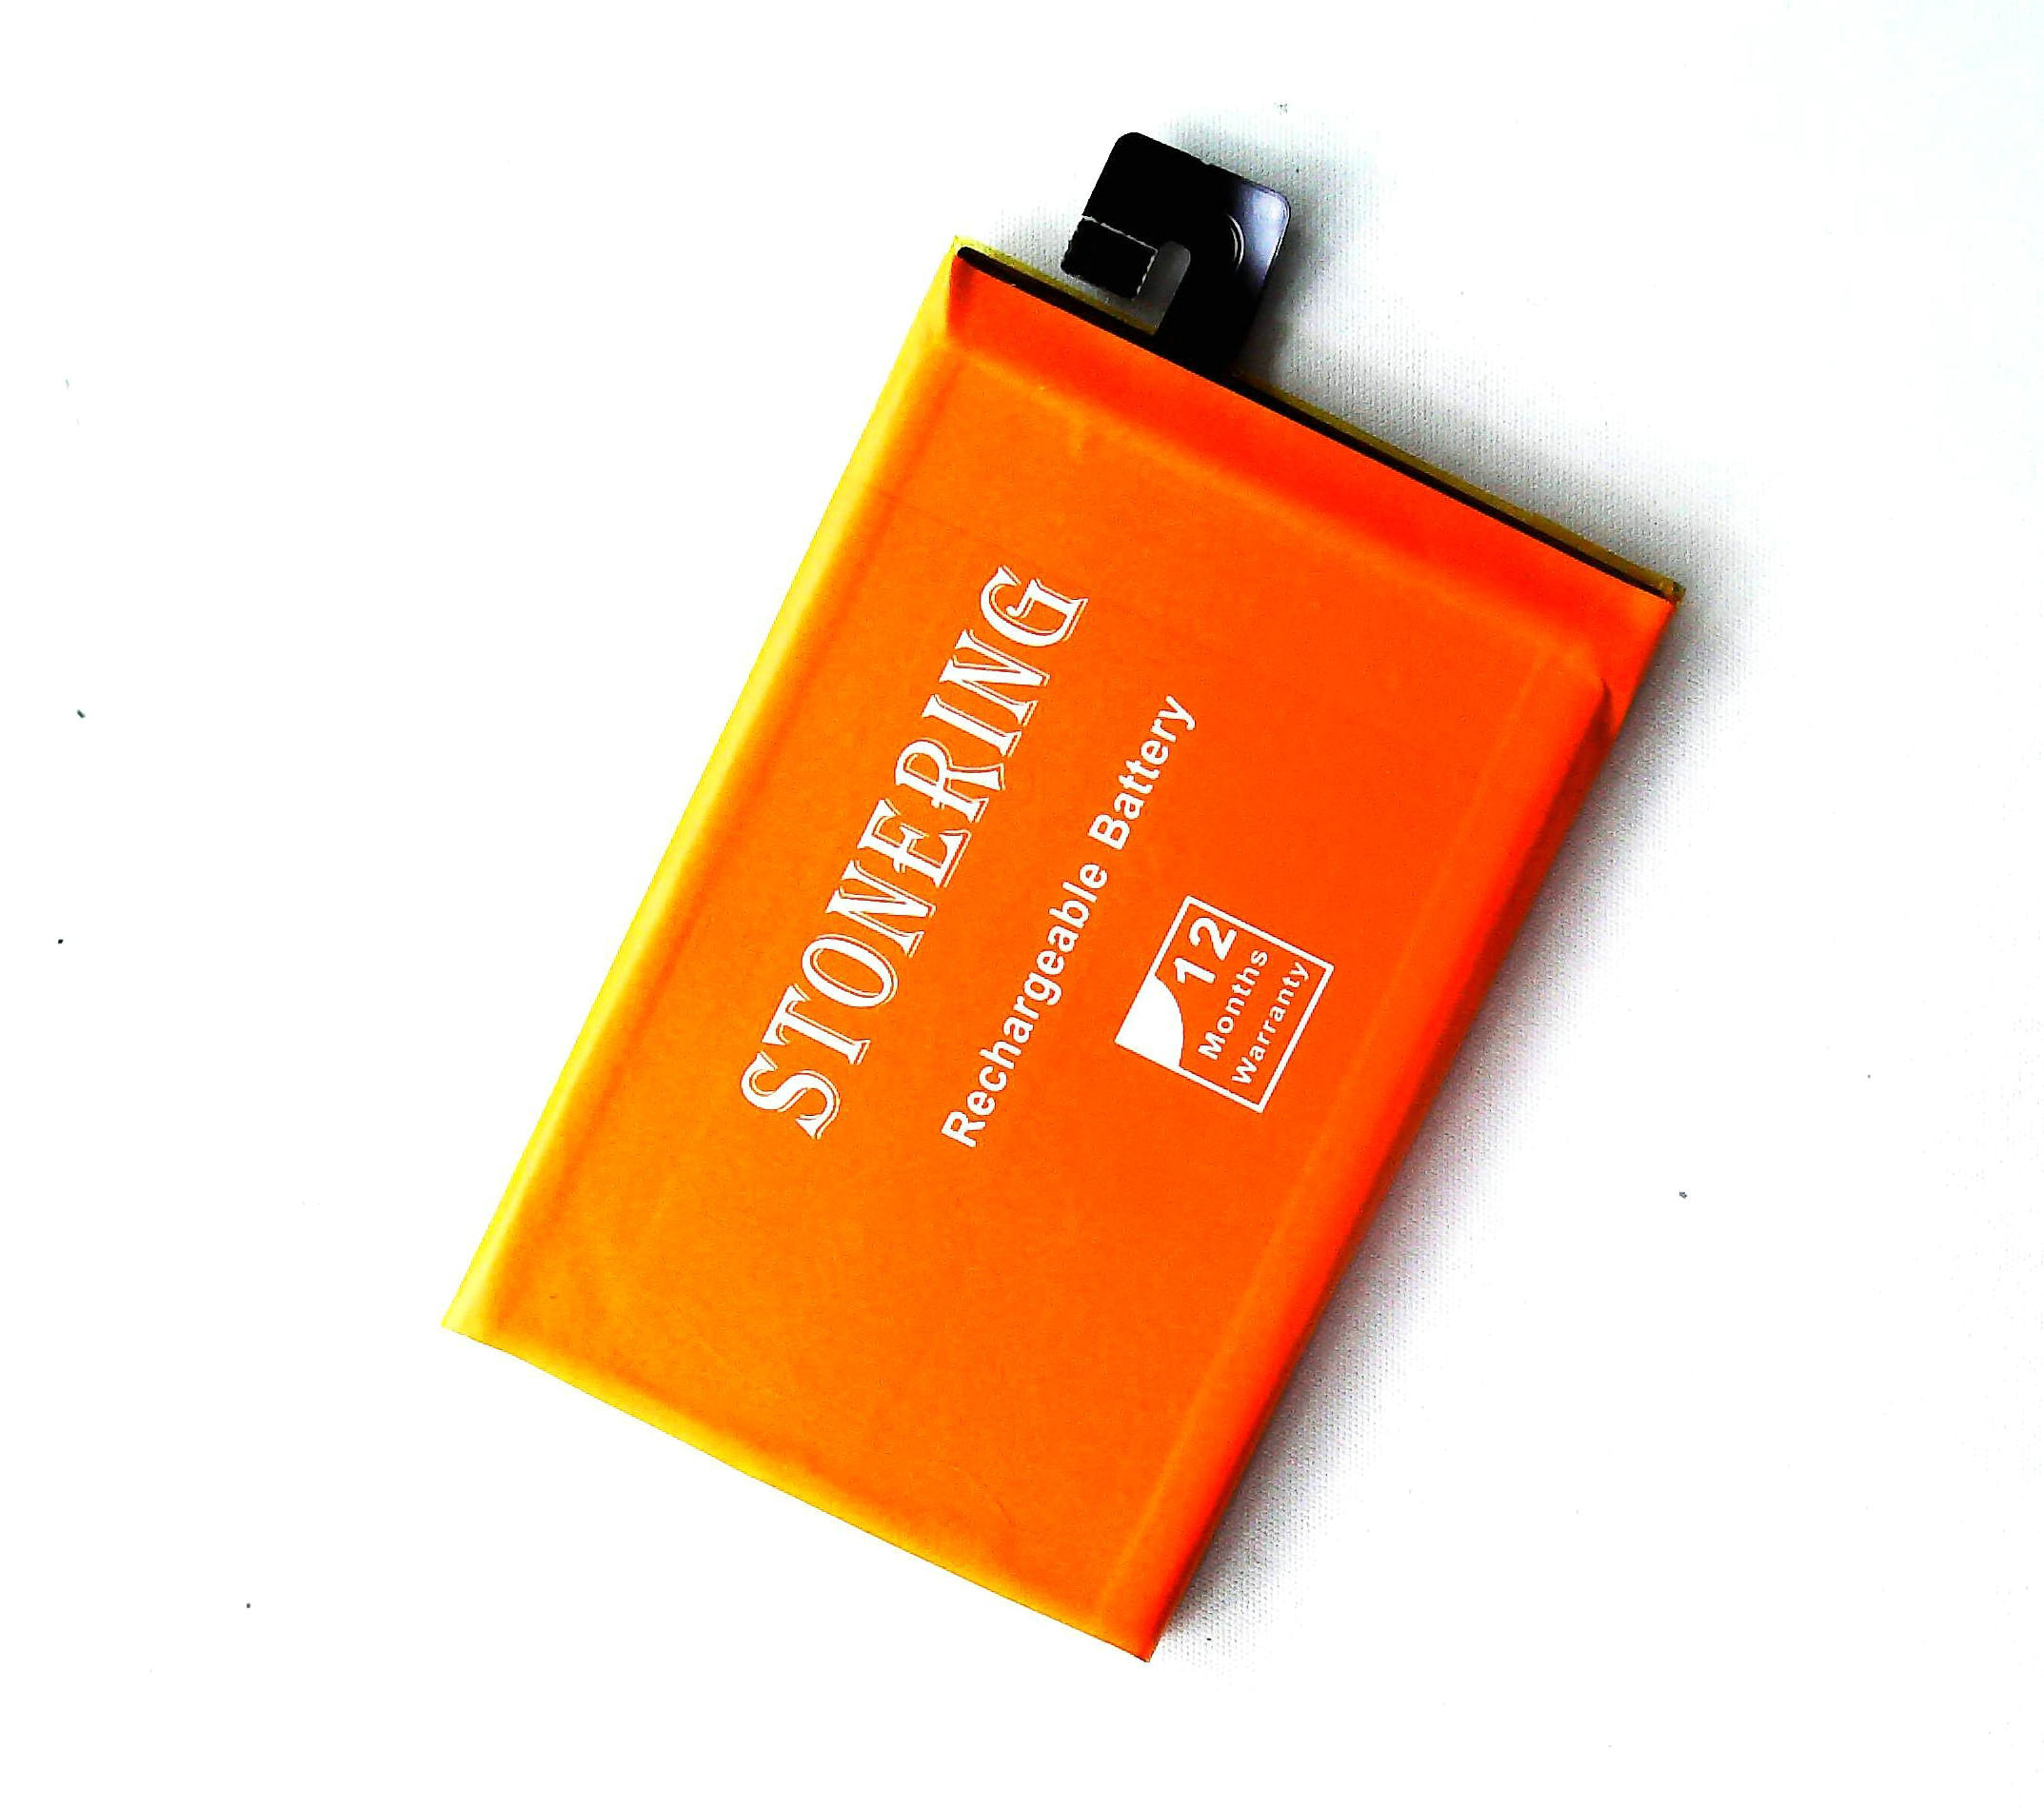 Stonering 5000mAh C11P1508 Replacement <font><b>Battery</b></font> For ASUS Zenfone Max 5000 5000Z <font><b>ZC550KL</b></font> Z010AD Z010DD C550KL Z010DA phone image